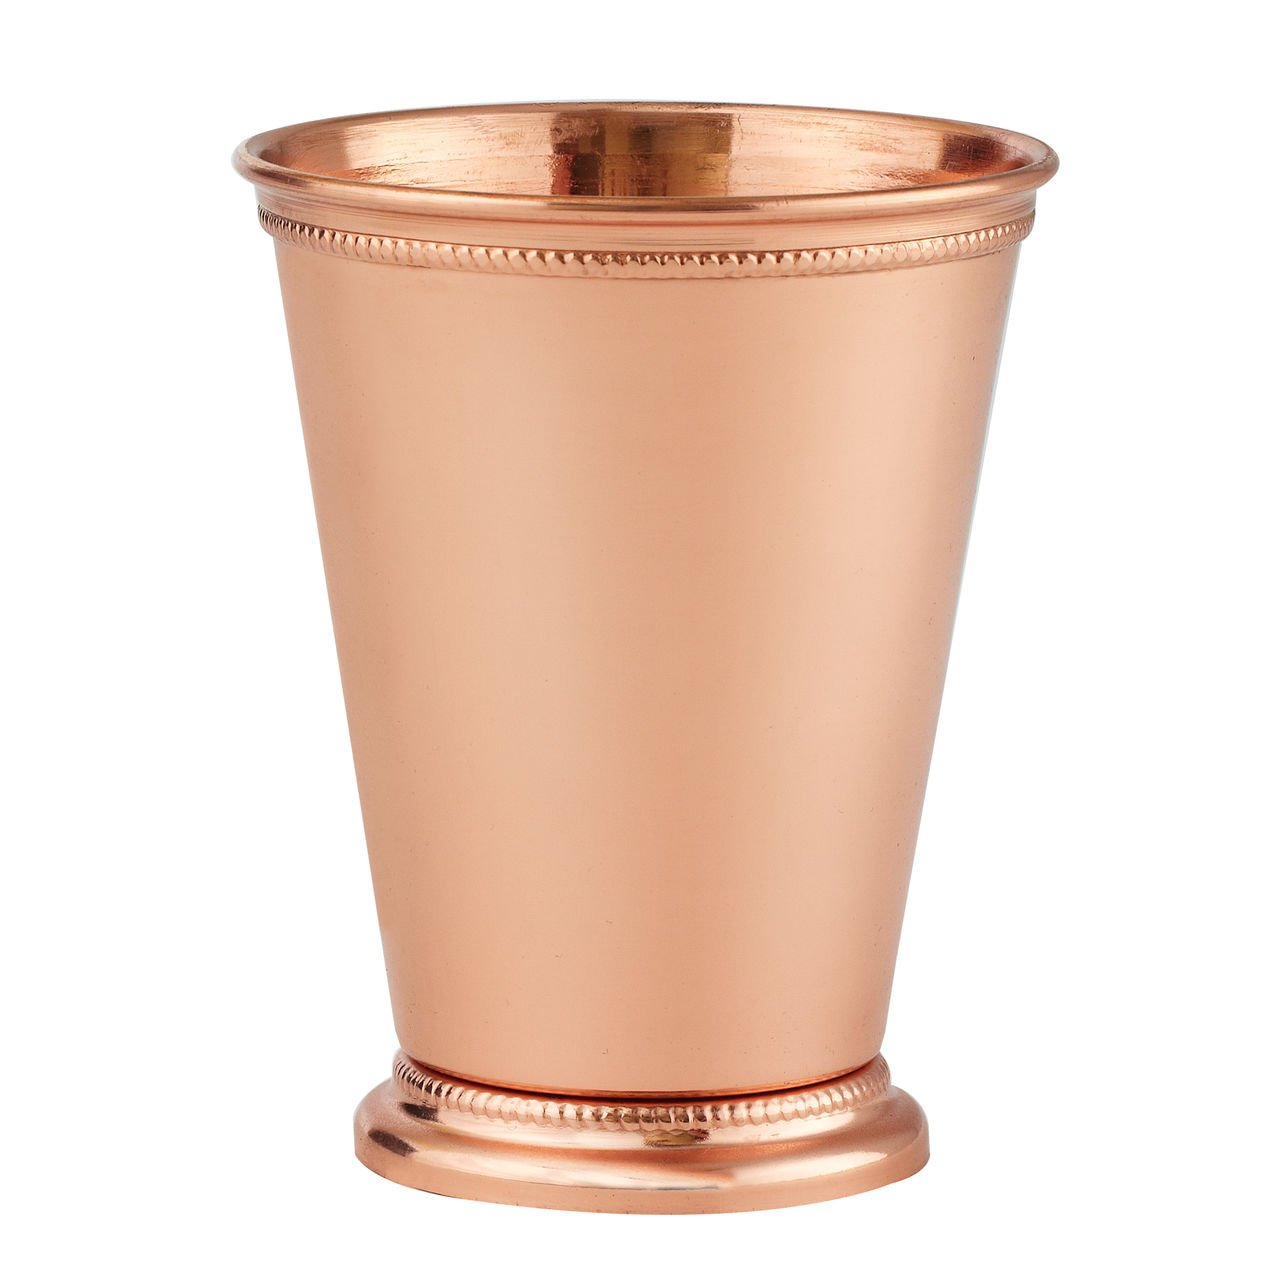 Copper Plated Mint Julep Cup. 4.5'' H. 12 oz. Capacity by TableTop King